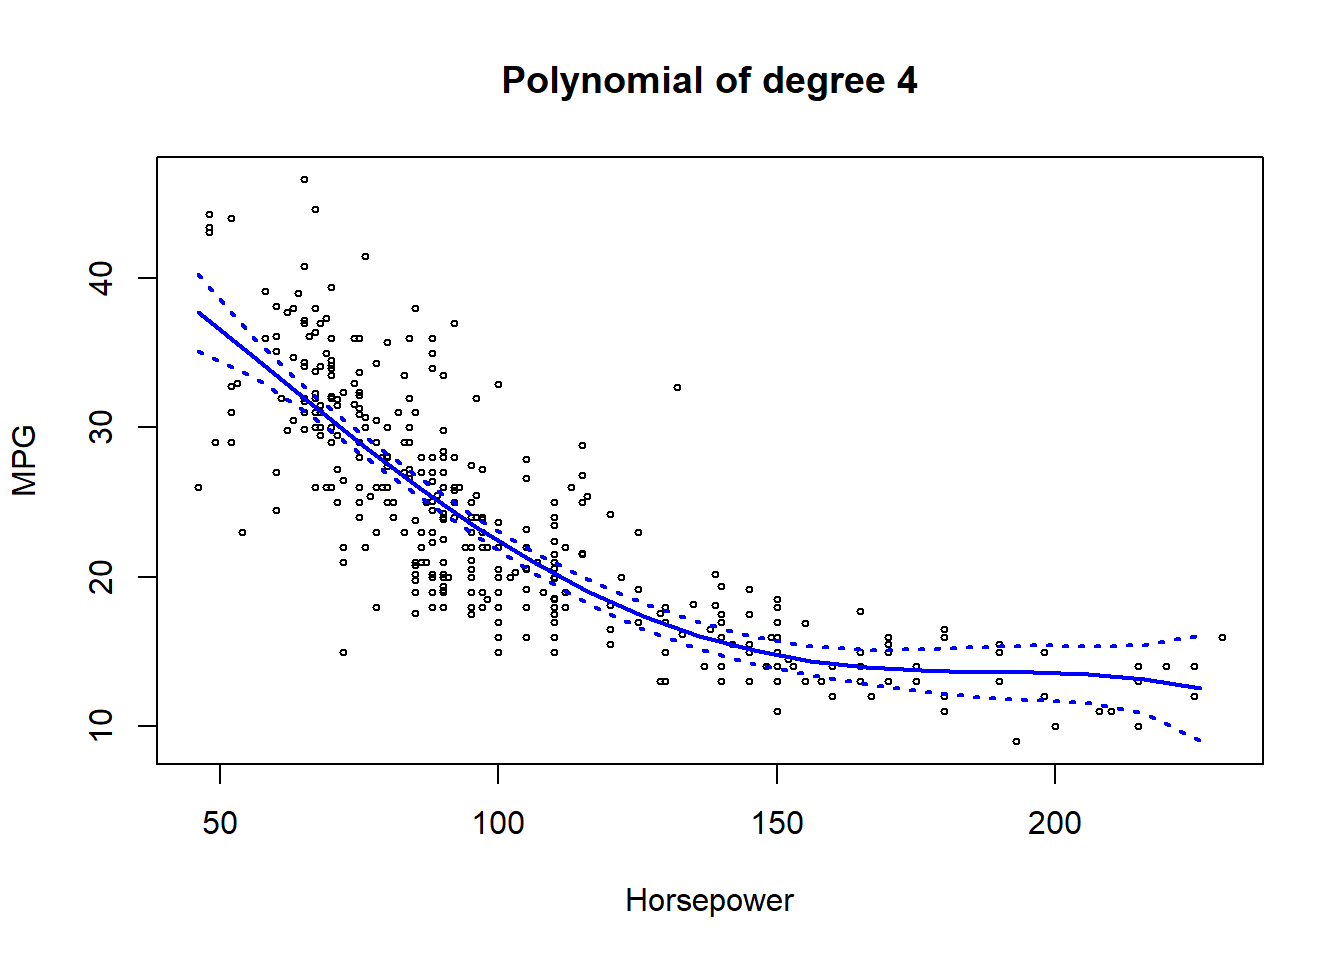 fig1-1